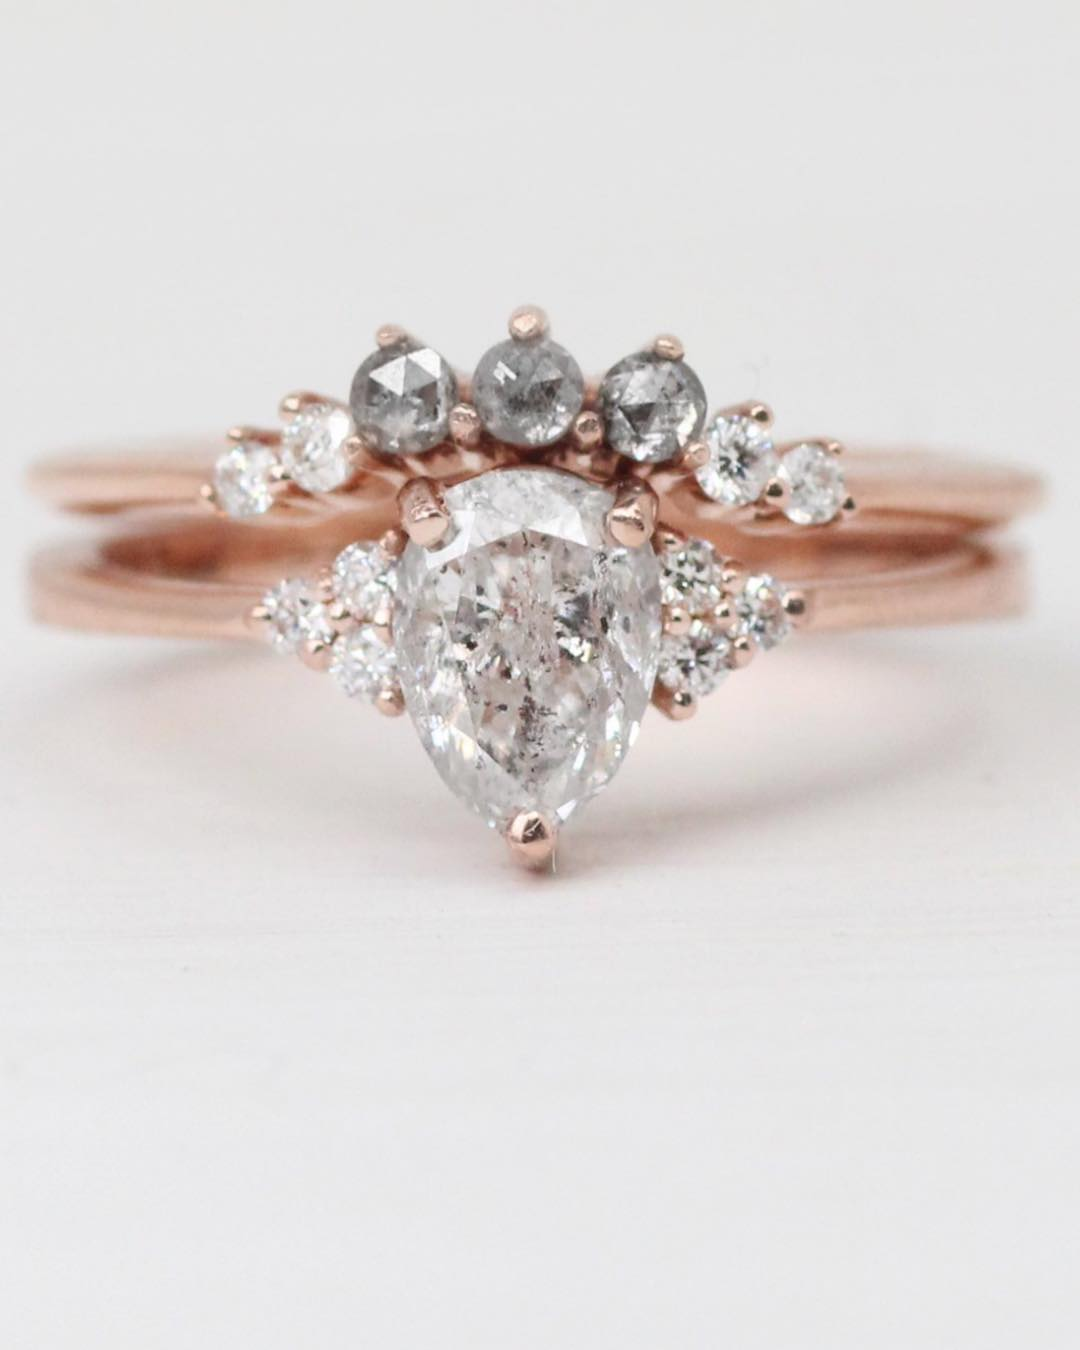 Inspiration ring - Imogene setting with your choice center diamond + side stones + metal - Celestial Diamonds ® by Midwinter Co.